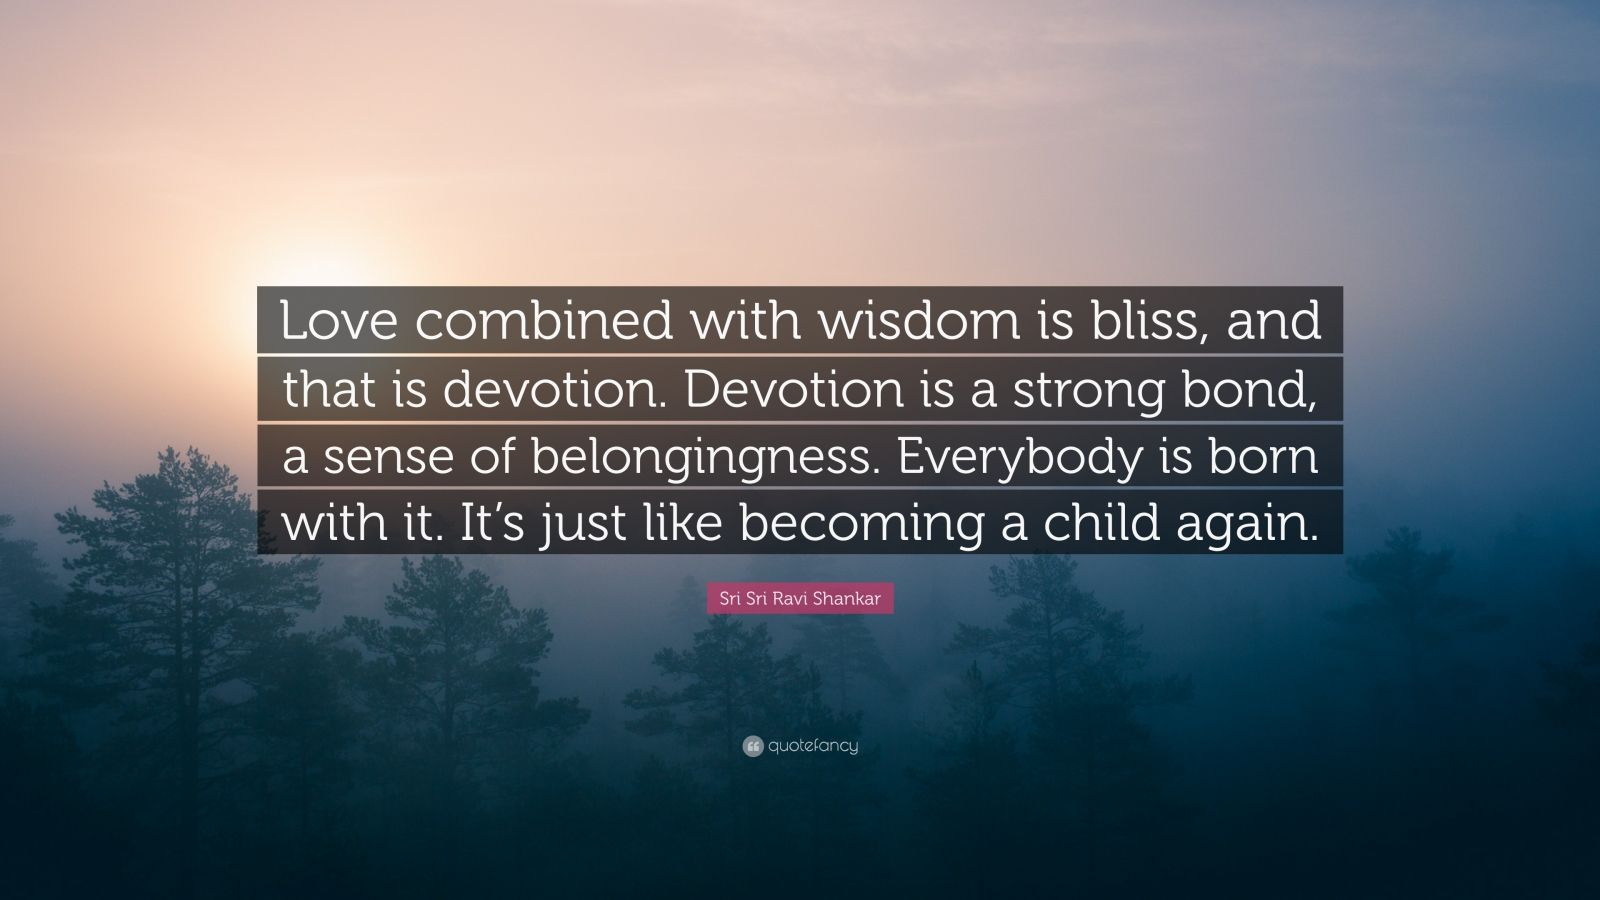 """Sri Sri Ravi Shankar Quote: """"Love combined with wisdom is bliss, and that is devotion. Devotion is a strong bond, a sense of belongingness. Everybody is born with it. It's just like becoming a child again."""""""